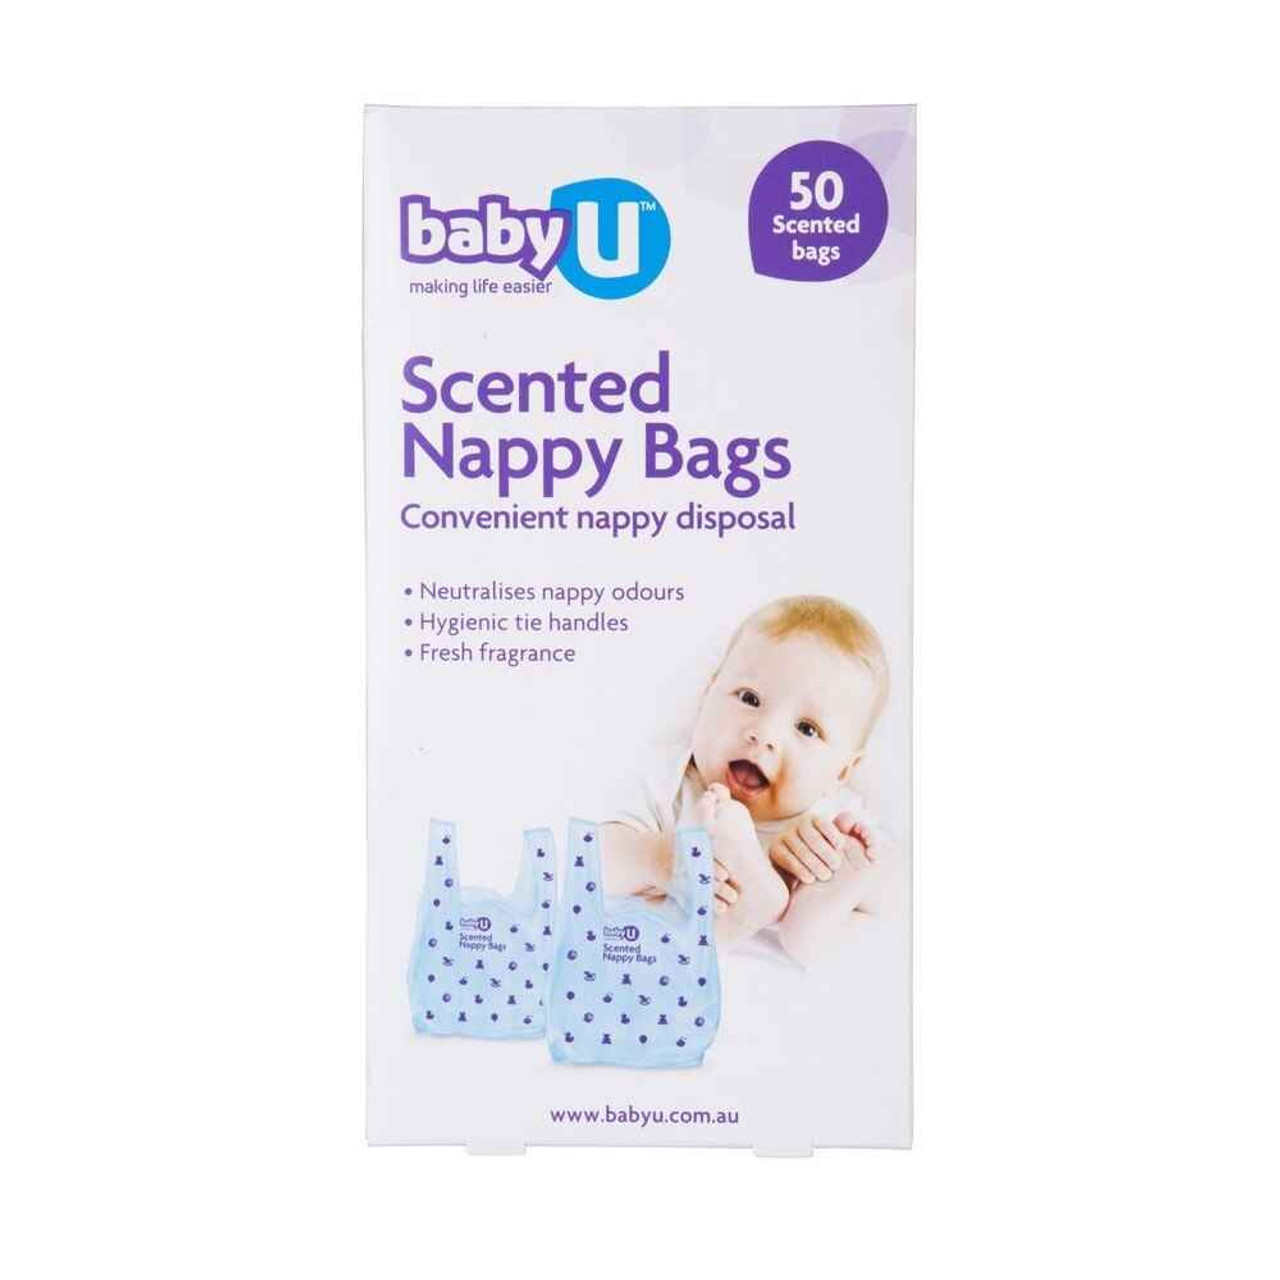 Baby U Baby U Scented Nappy Bags 50 Pack